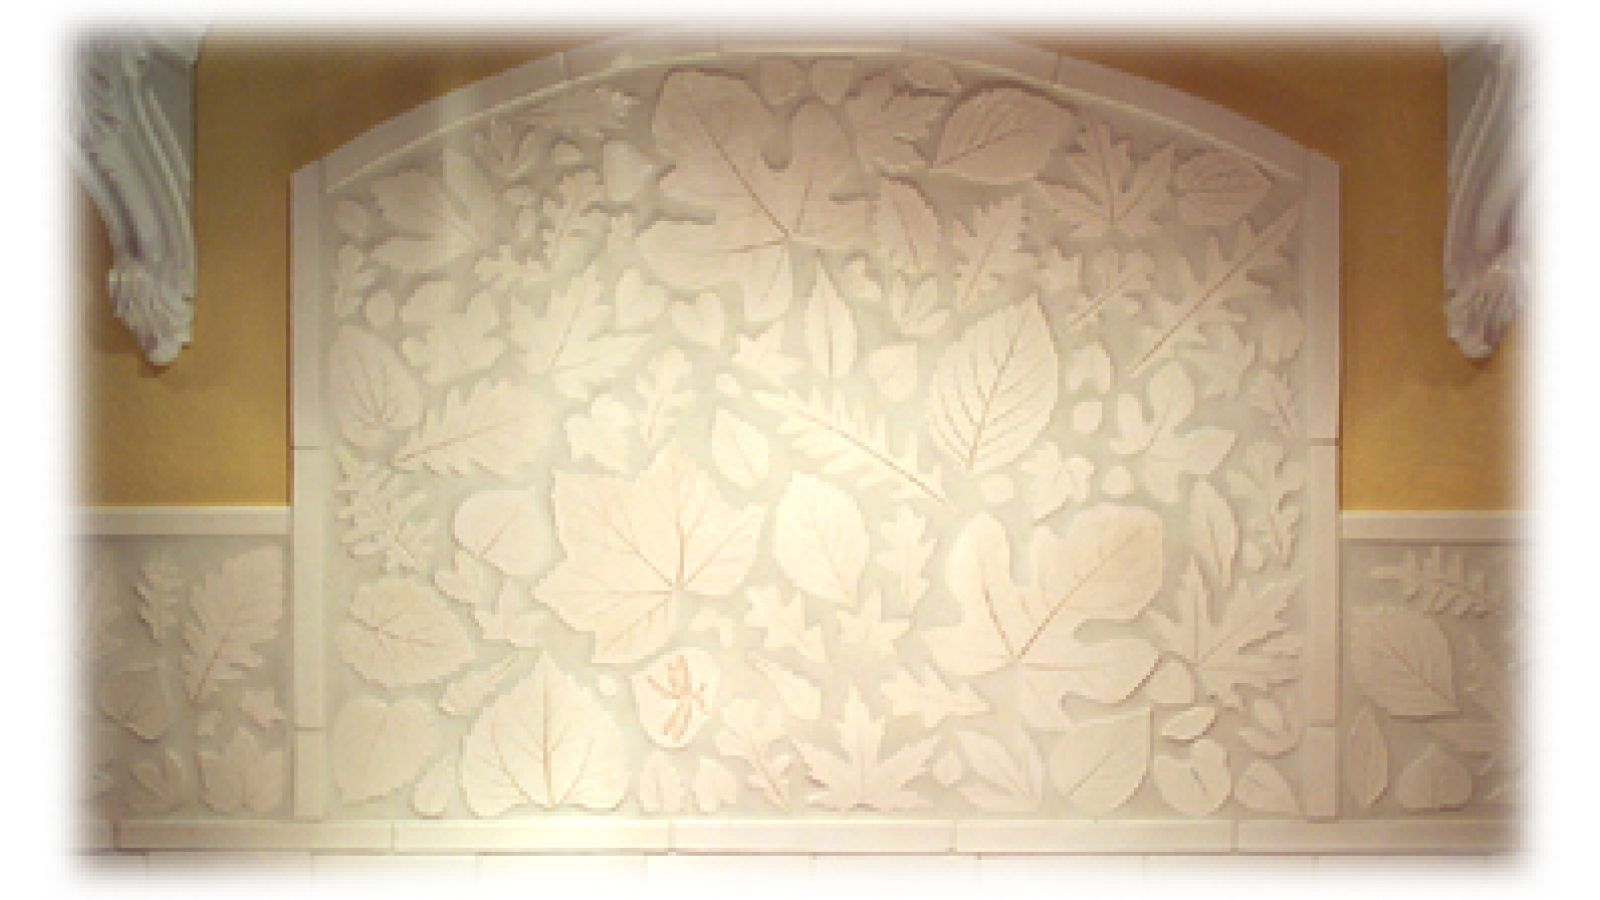 Leaf shaped mosaic ceramic tiles